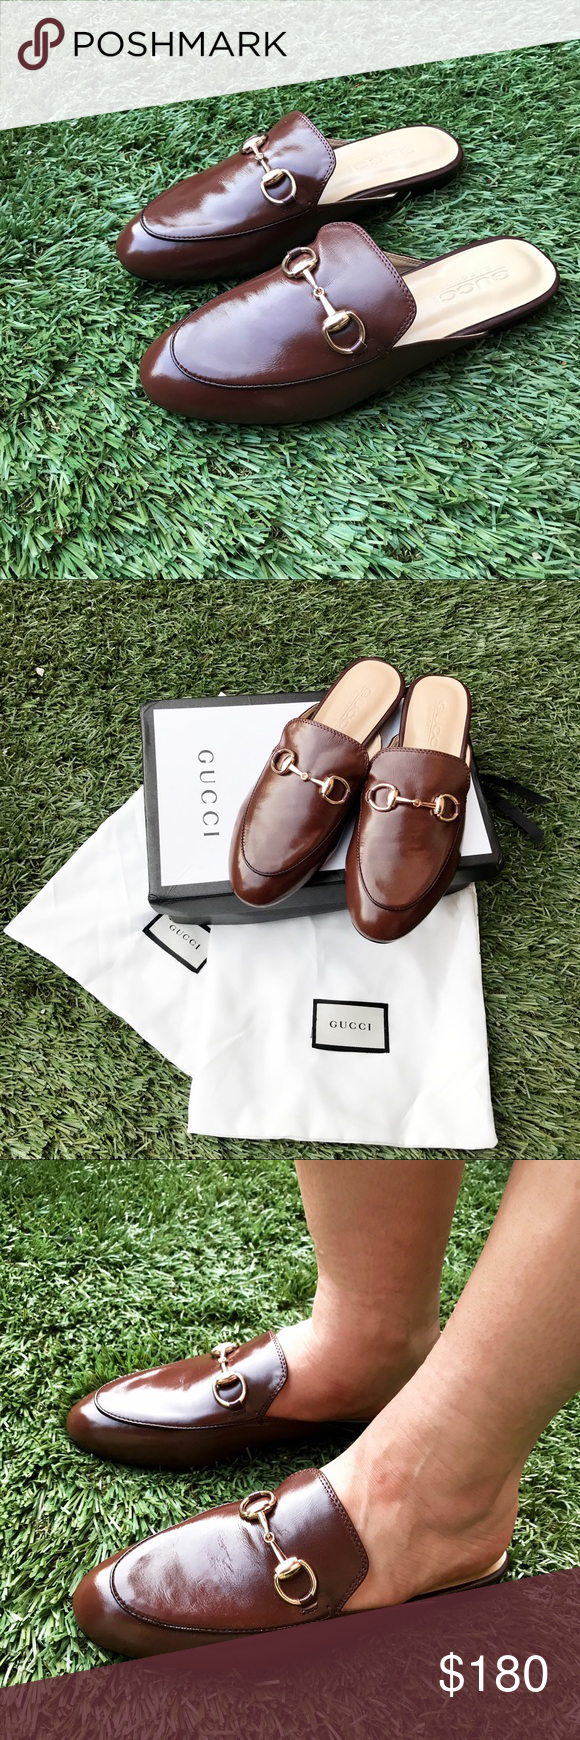 bb6a6c544c4 Gucci Princetown faux brown mule slide loafers Faux Gucci princetown gold  clasp brown leather loafers. Slides   mules. Size 38 or 7.5. New never been  worn